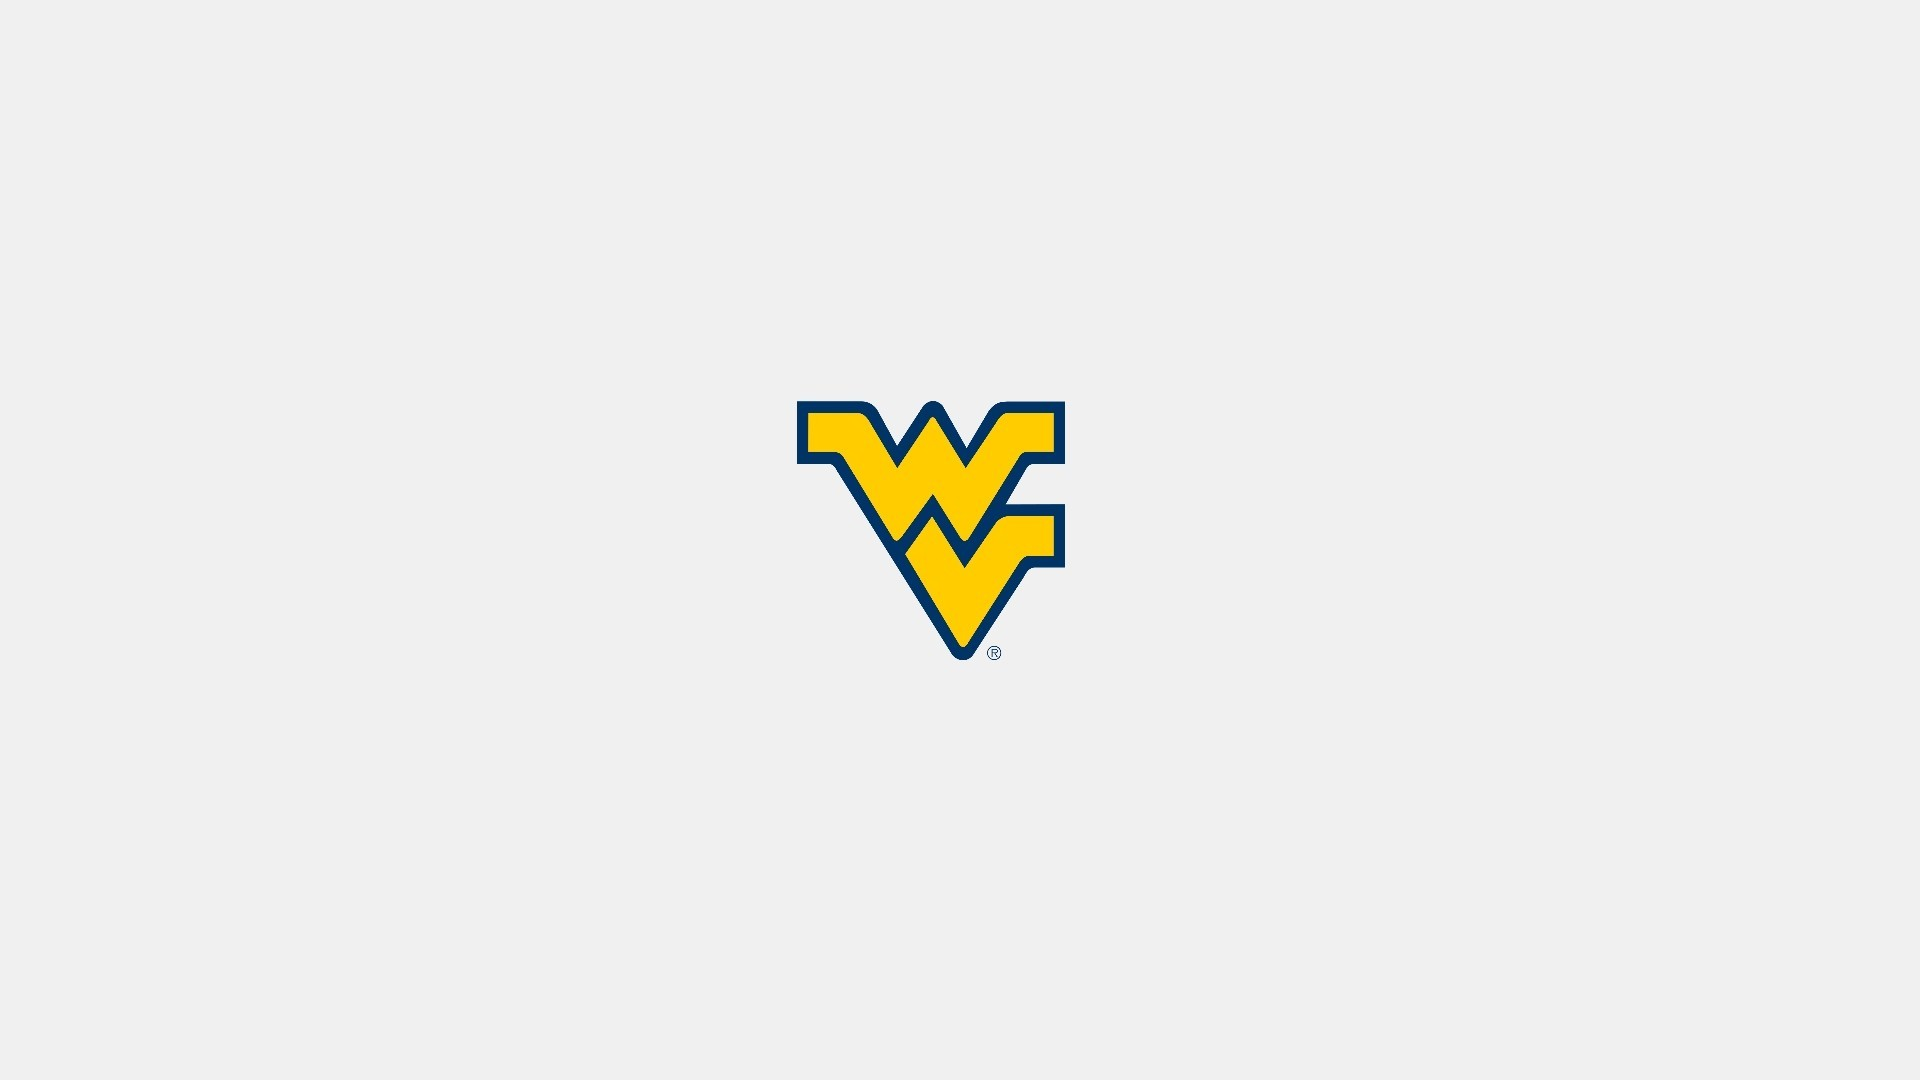 Free Wvu Wallpapers  Wallpaper Cave